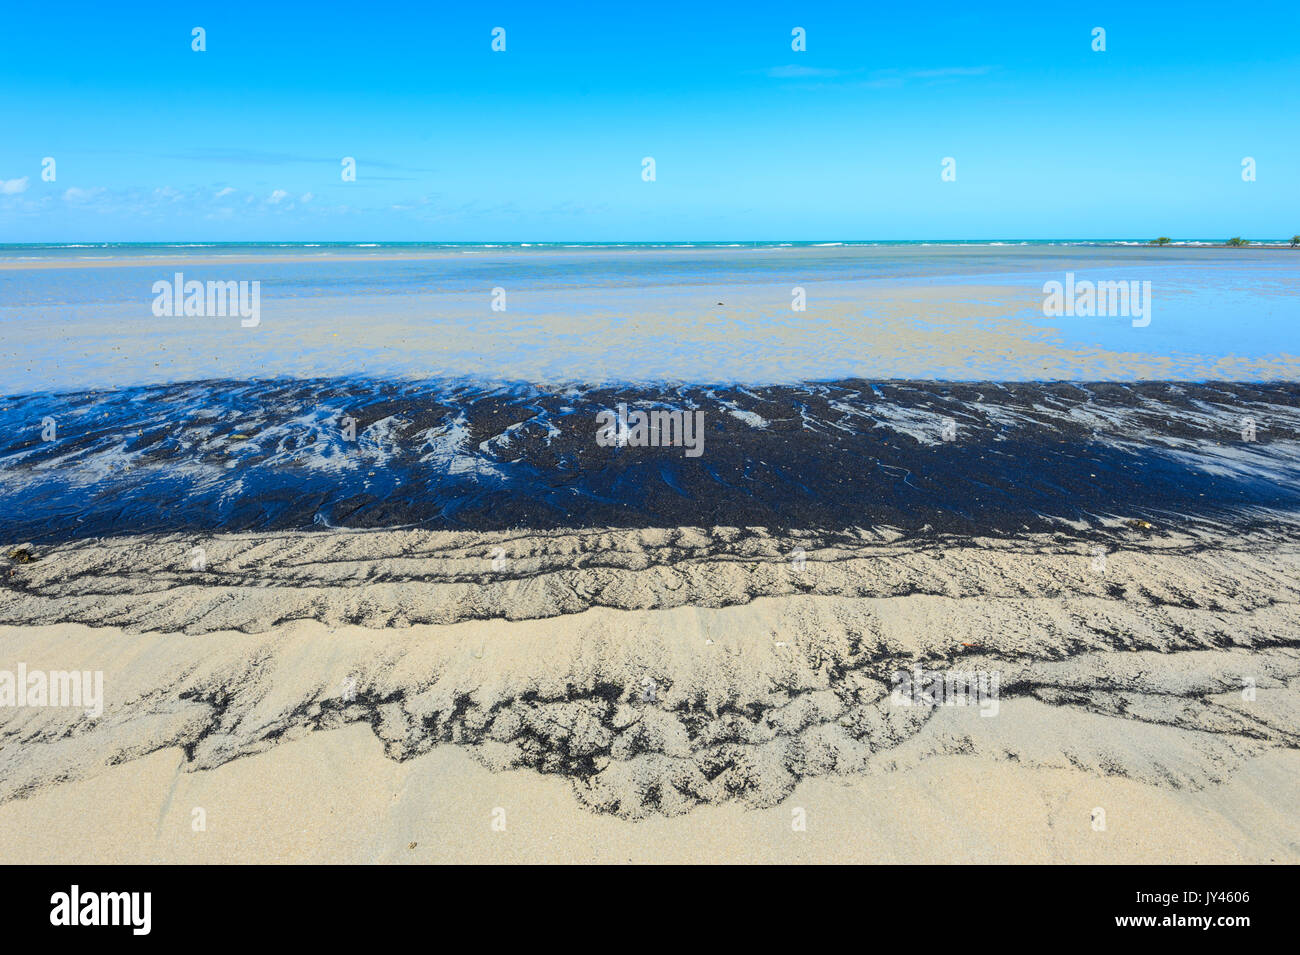 Sand Patterns made of ilmenite and magnetite eroded from granites, Cape Tribulation, Daintree National Park, Far North Queensland, FNQ, QLD, Australia - Stock Image